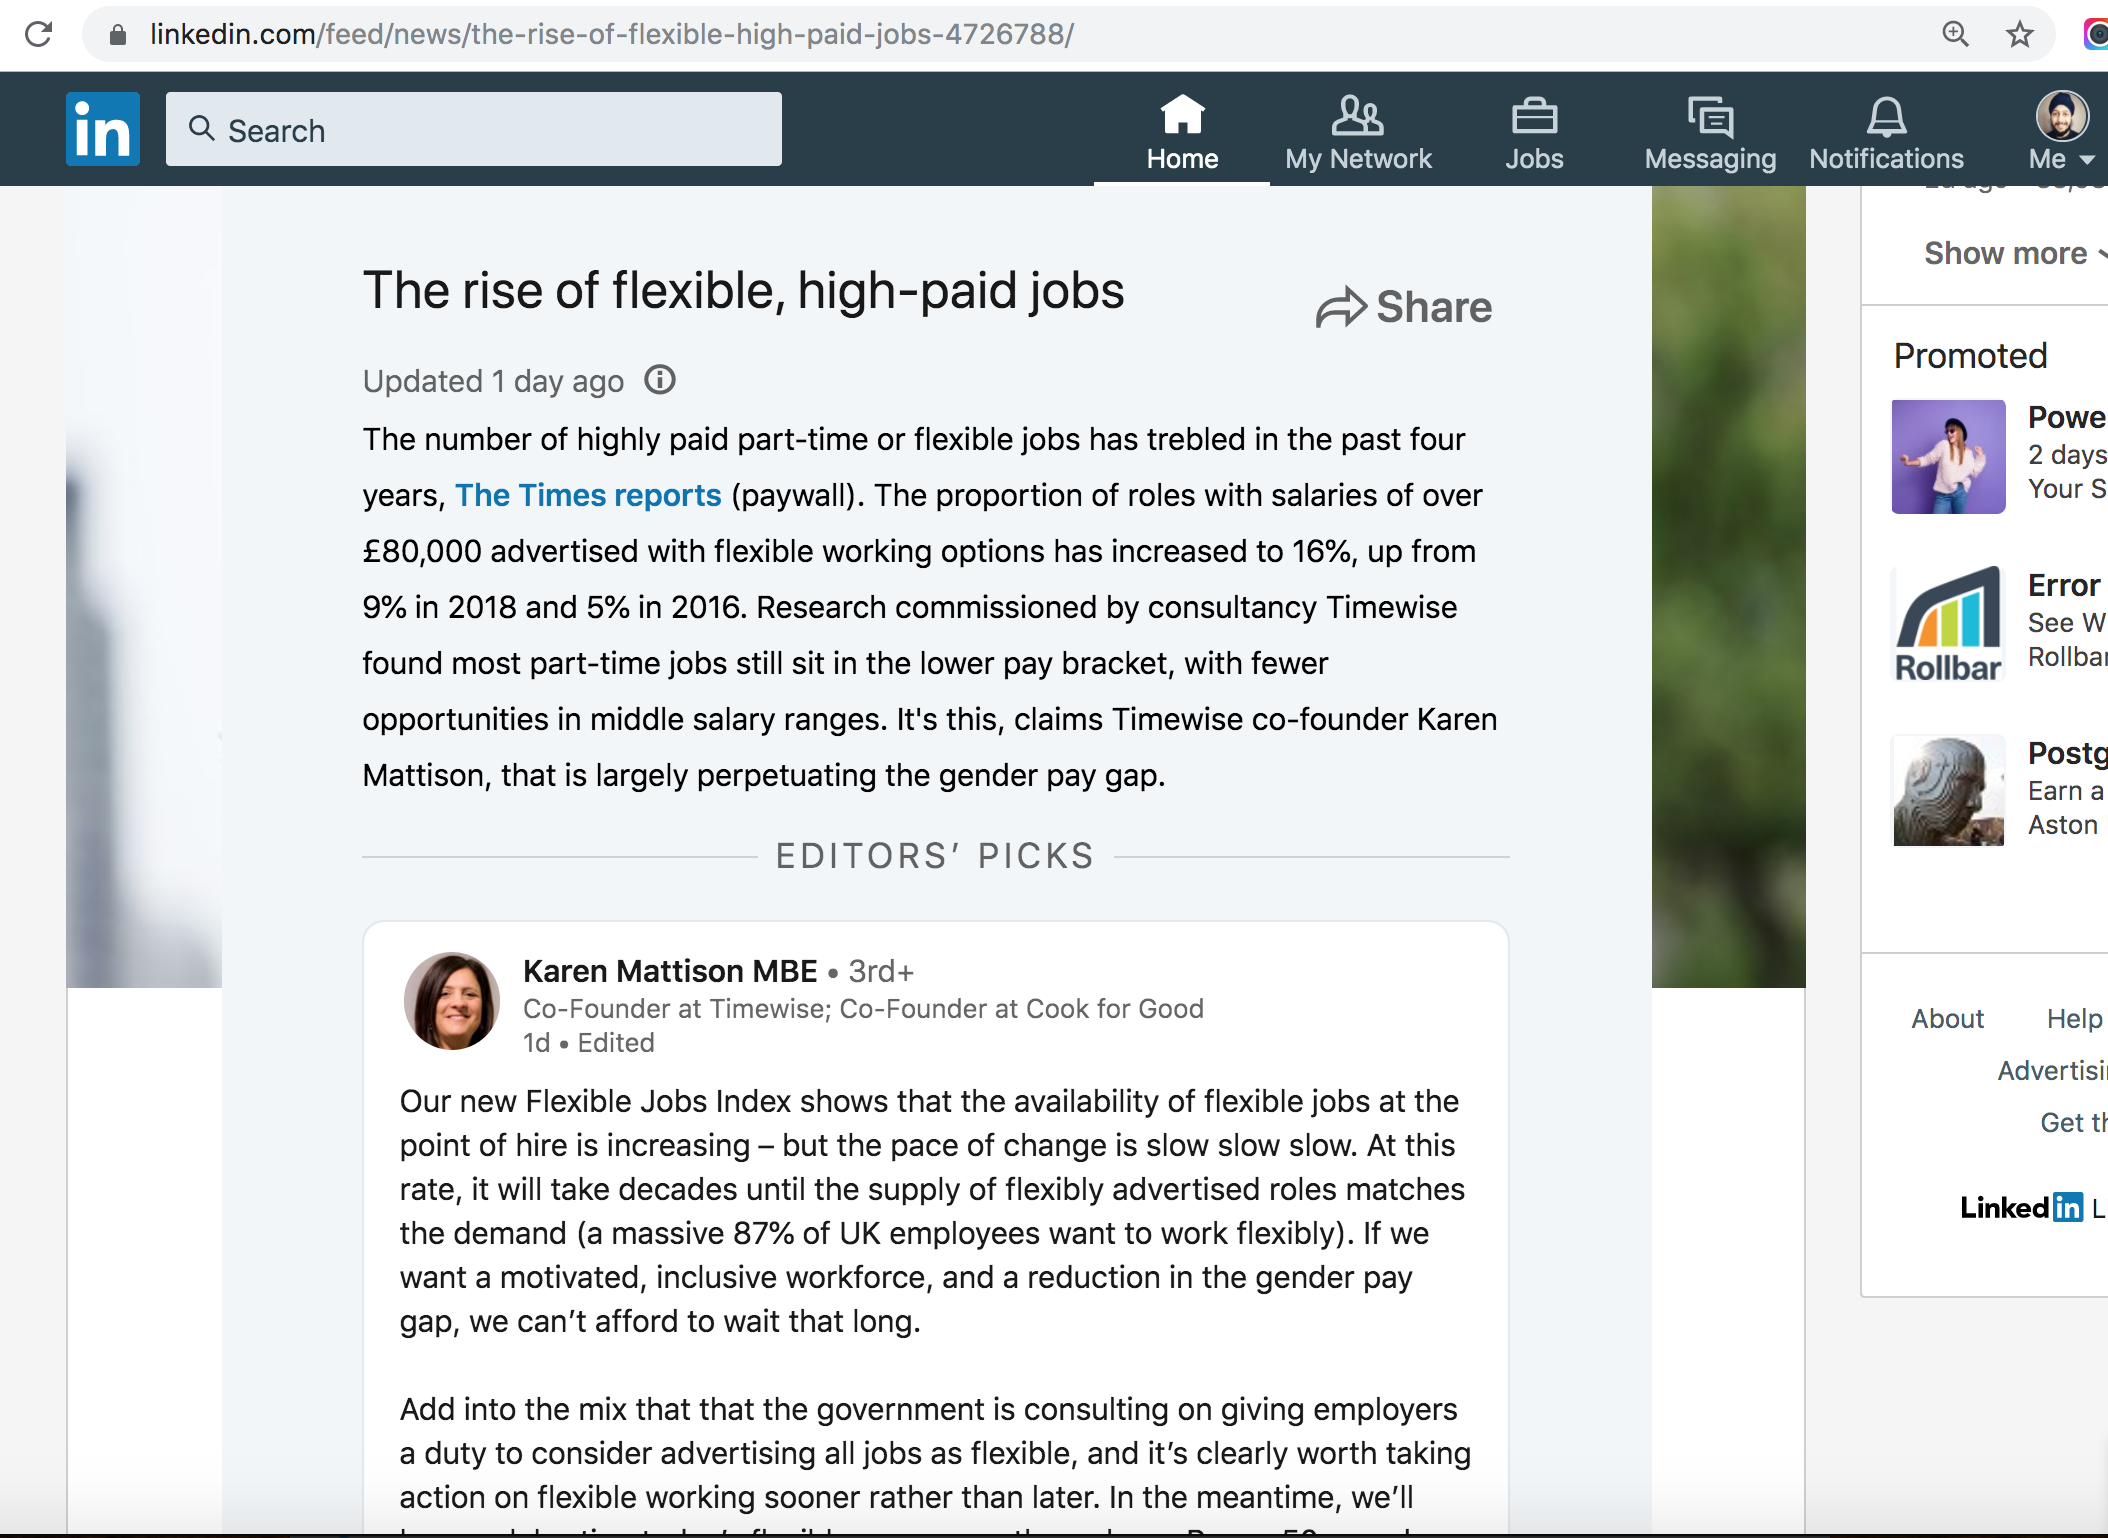 LinkedIn Article about the rise of high paid yet flexible jobs